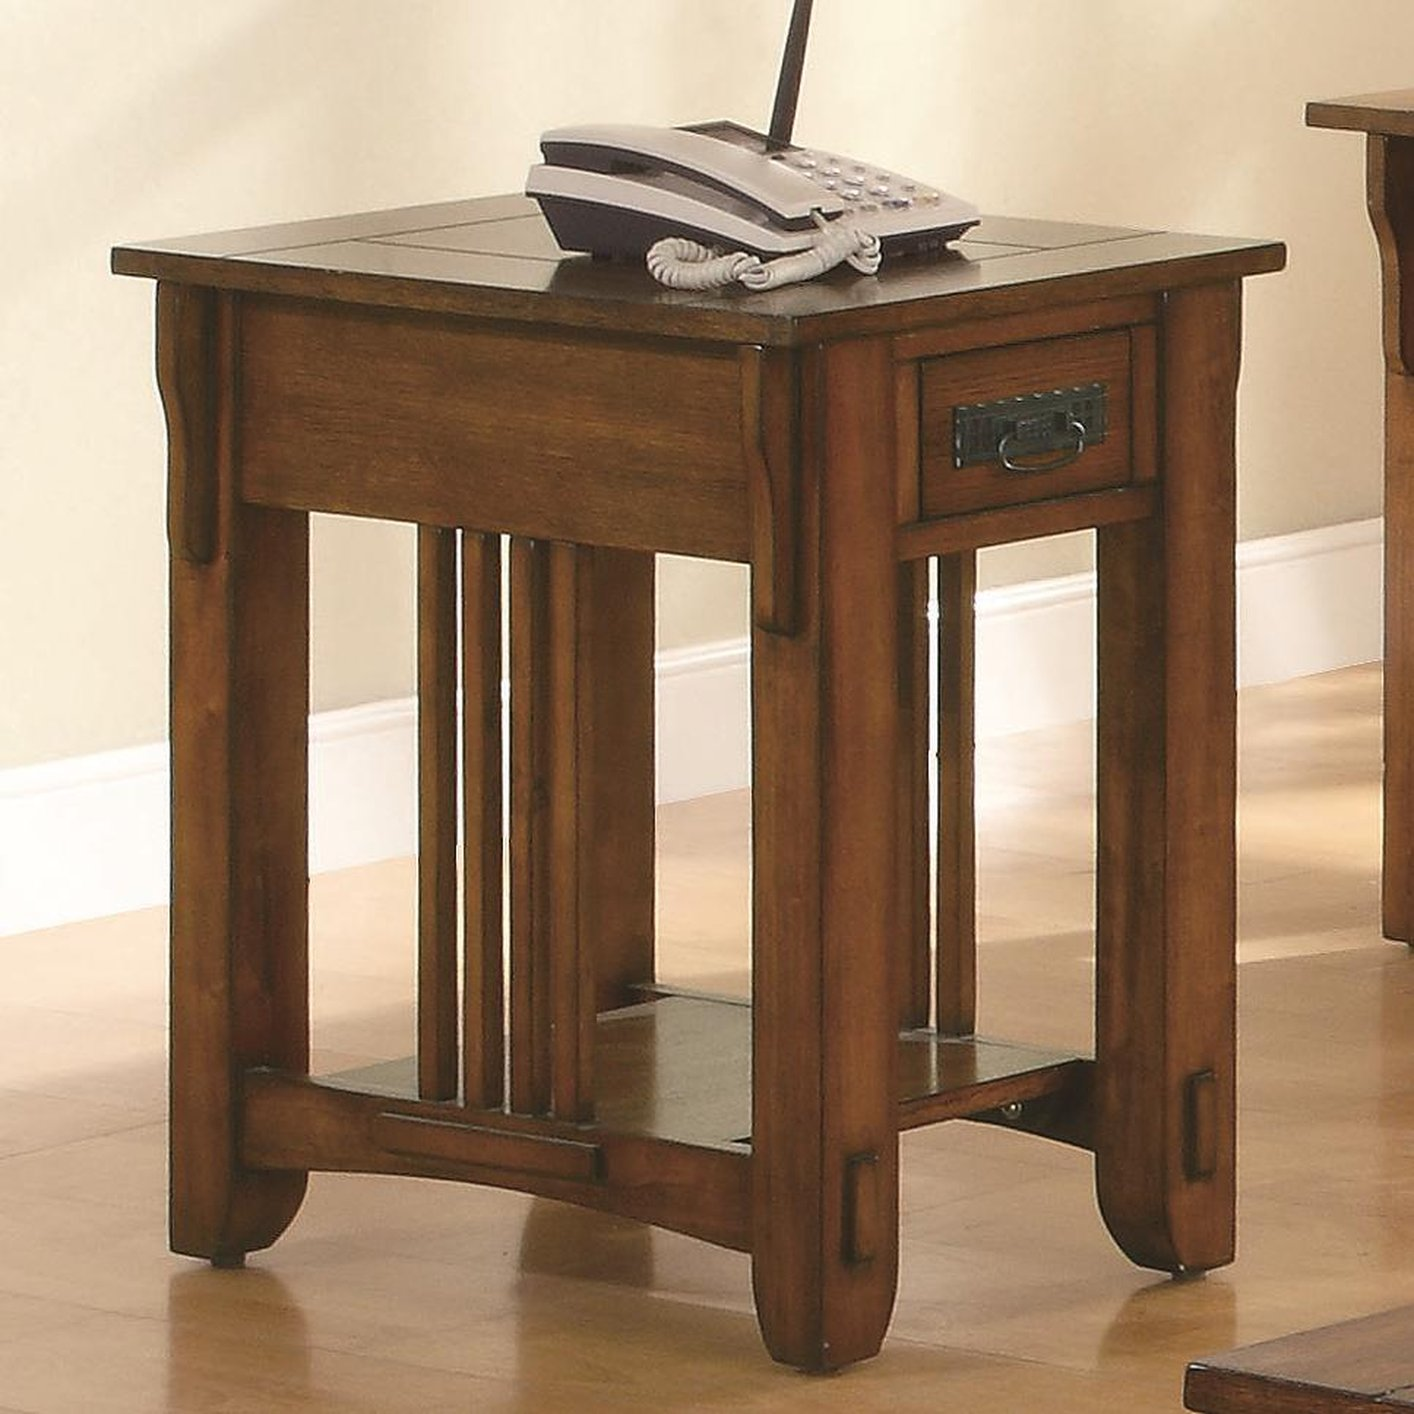 Colton Brown Wood Chair Side Table Steal A Sofa Furniture Outlet